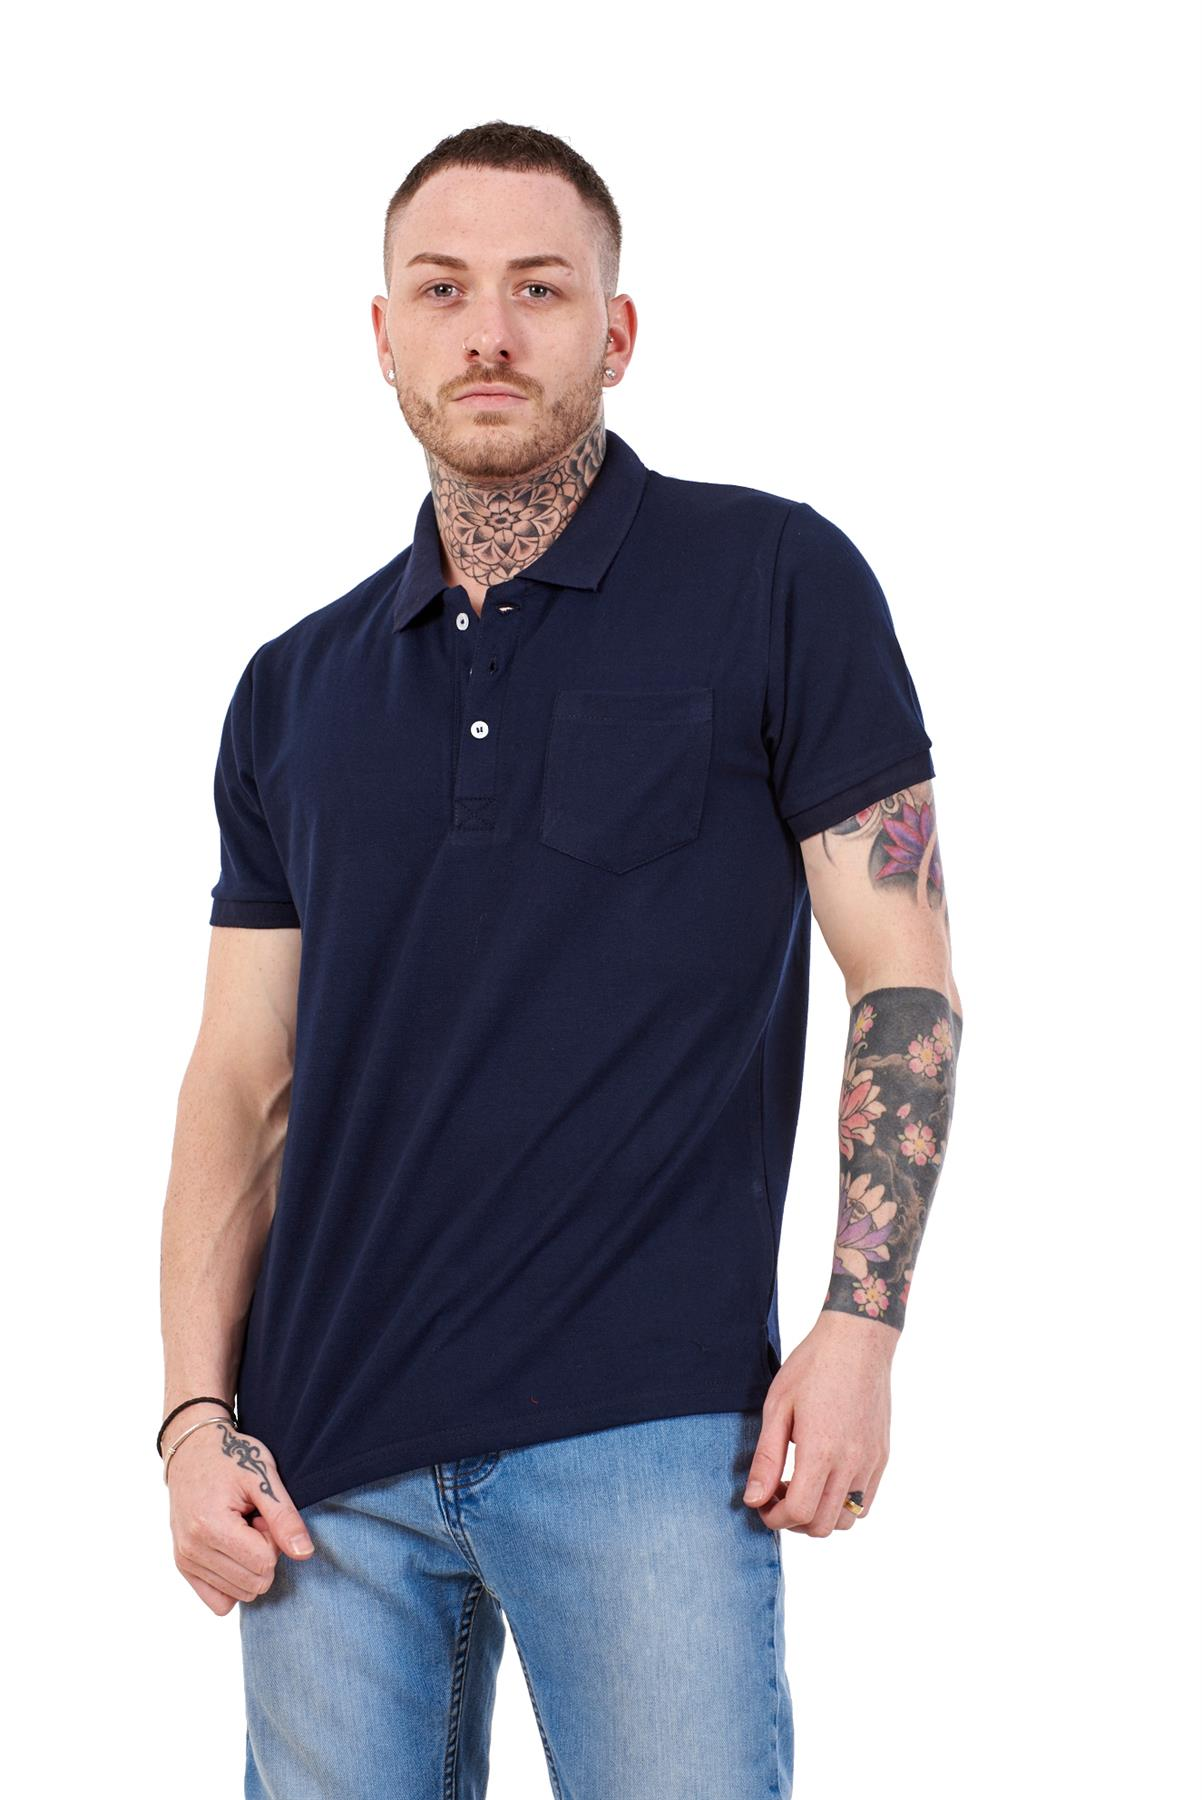 Mens-Cotton-T-Shirts-Regular-fit-Plain-Polo-Pocket-Casual-Formal-Shirt-Top-M-XXL thumbnail 20